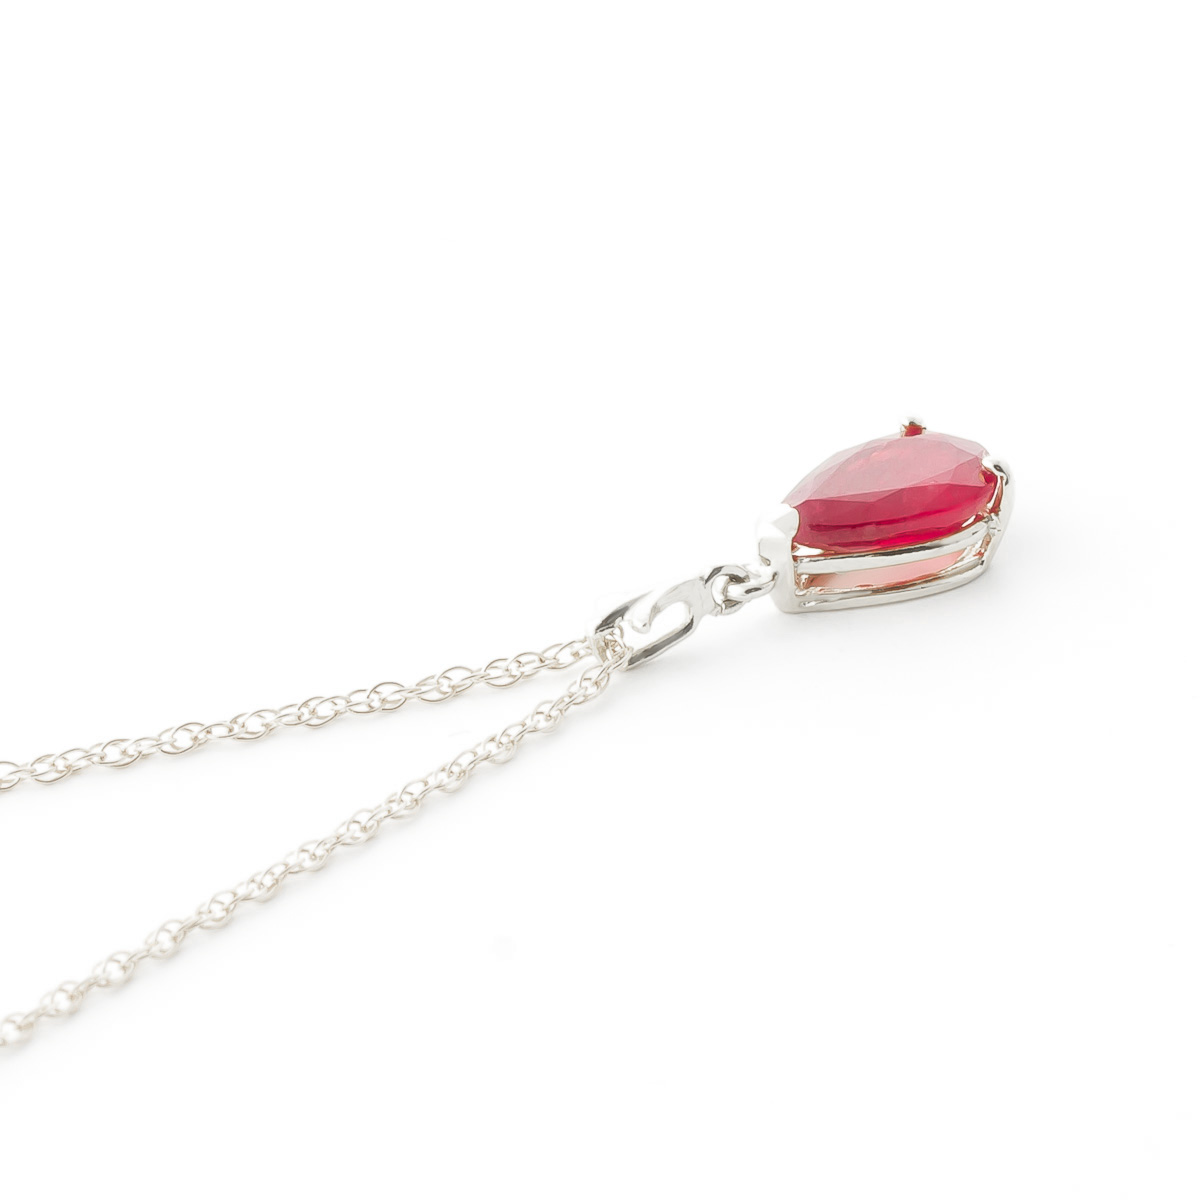 Ruby Belle Pendant Necklace 1.75ct in 9ct White Gold